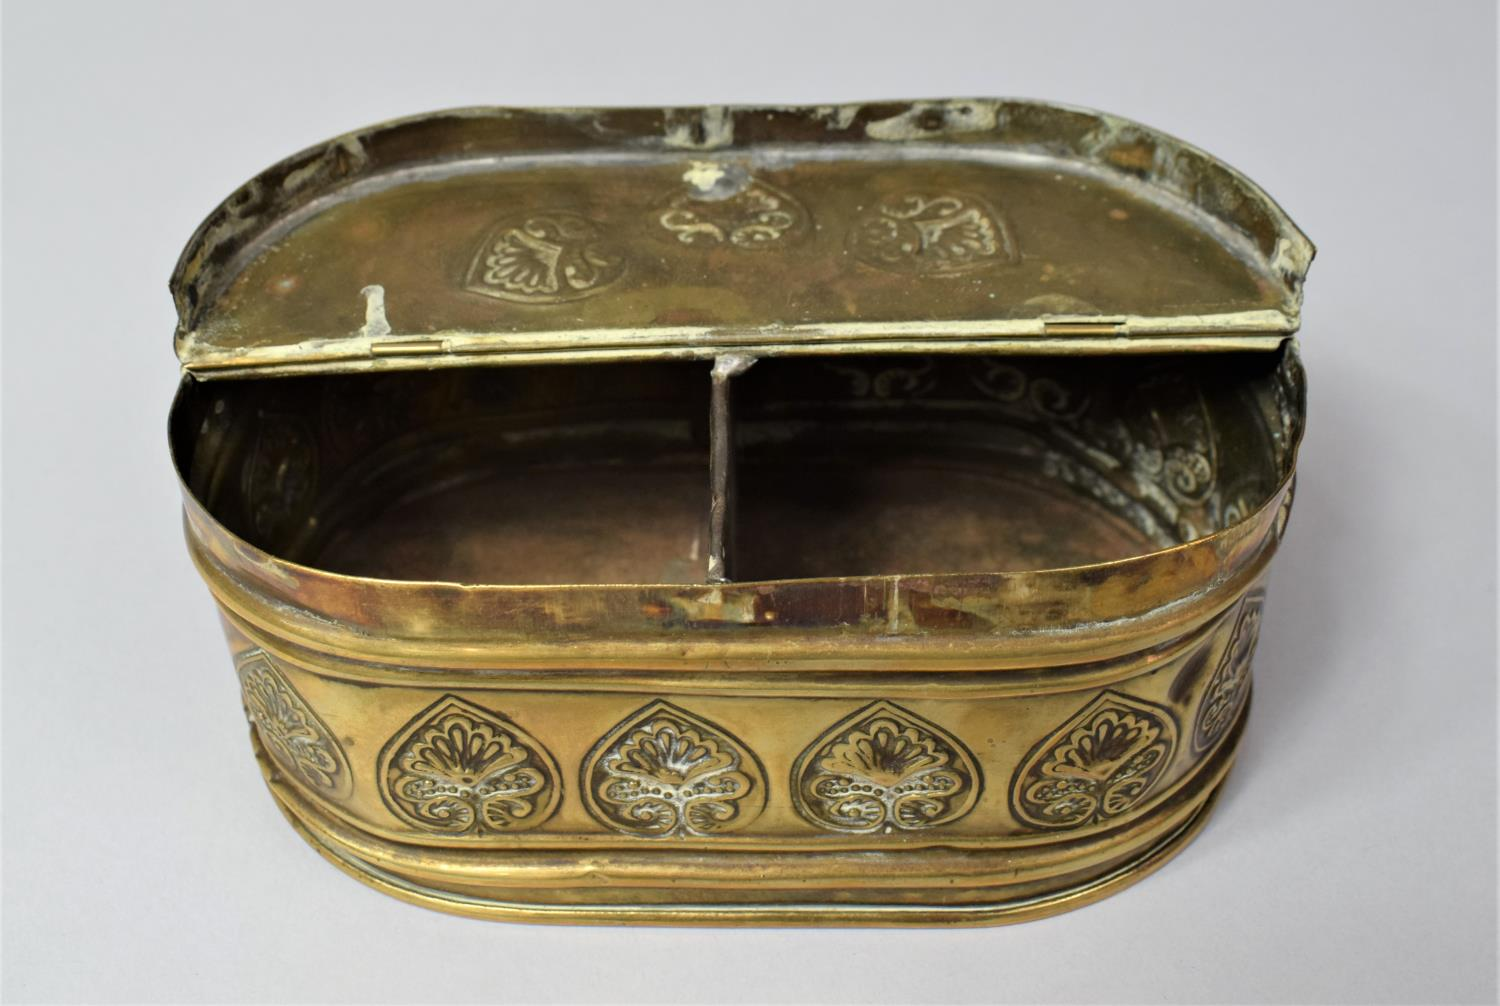 A 19th Century Dutch Brass Oval Two Division Tobacco Box with Hinged Lid, 15.5cm Long - Image 5 of 5